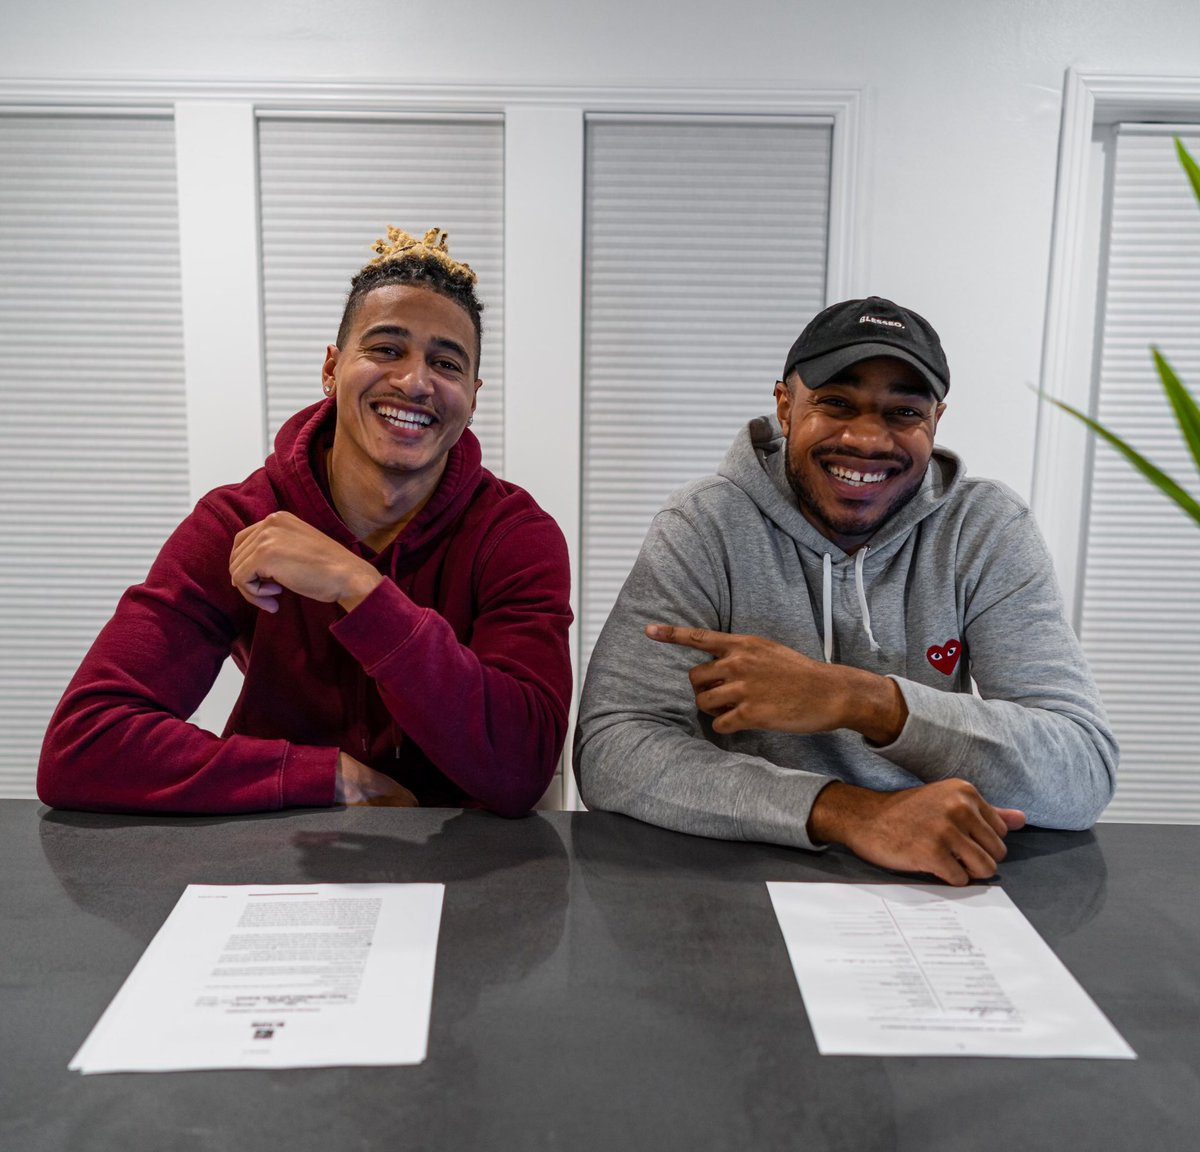 Real life family business... happy to announce @CalFootball alum and @WashingtonNFL WR @Trevor9Davis as the newest member of the @VanguardSG family! 🤝 #ItsBetterThisWay